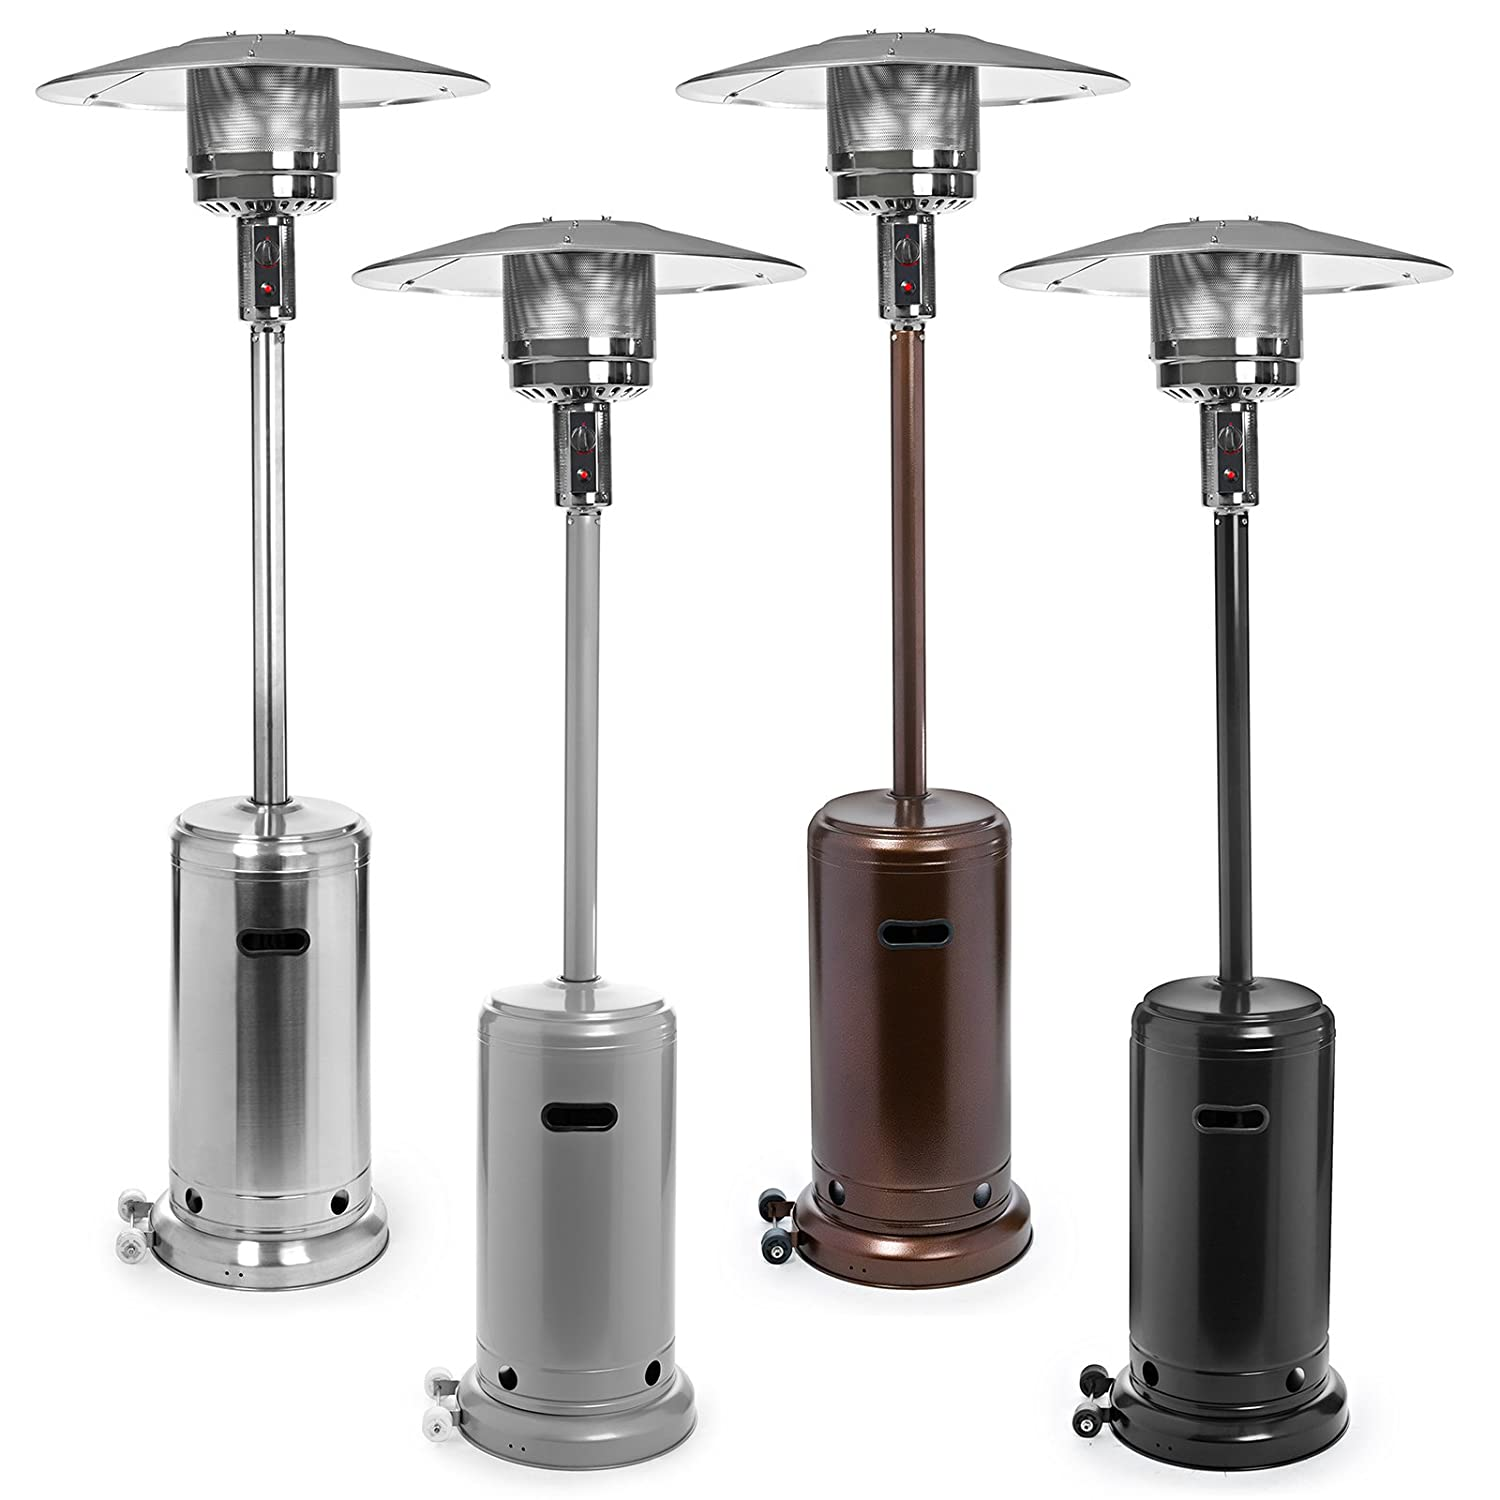 Amazon.com : Thermo Tiki Stainless Steel Floor-Standing Propane ...